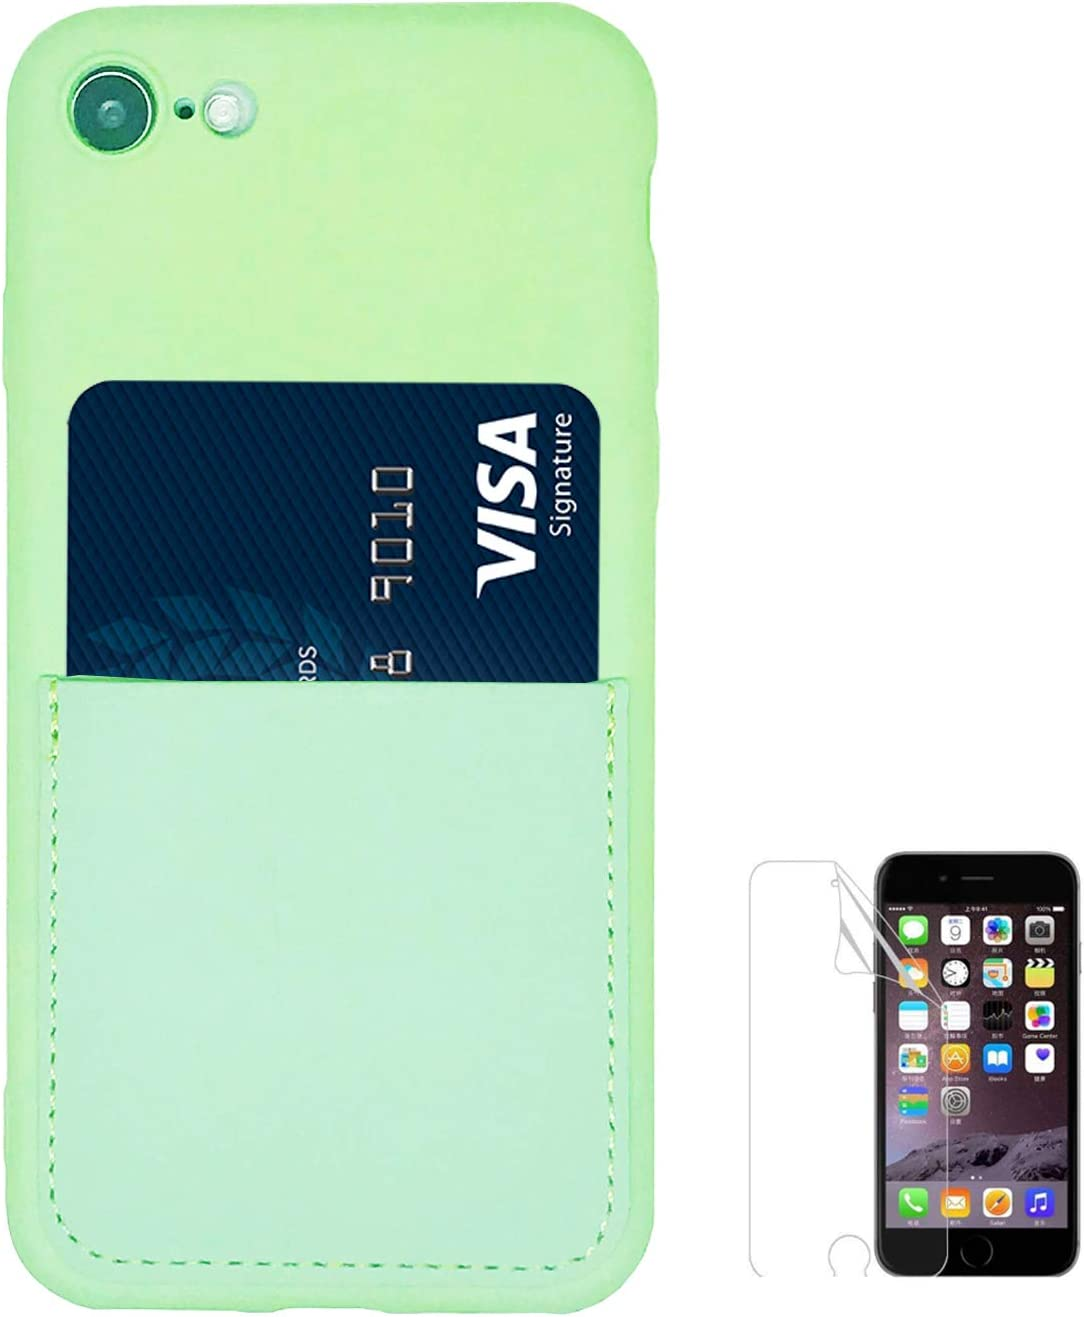 Oddss Silicone Case for iPhone SE 2020,for iPhon 7/8 4.7 inch Liquid Silicone Wallet Case with Card Holder Slot Soft Slim Cover Compaible iPhone 8/7, iPhone SE 2020 with Screen Protector (Mint Green)